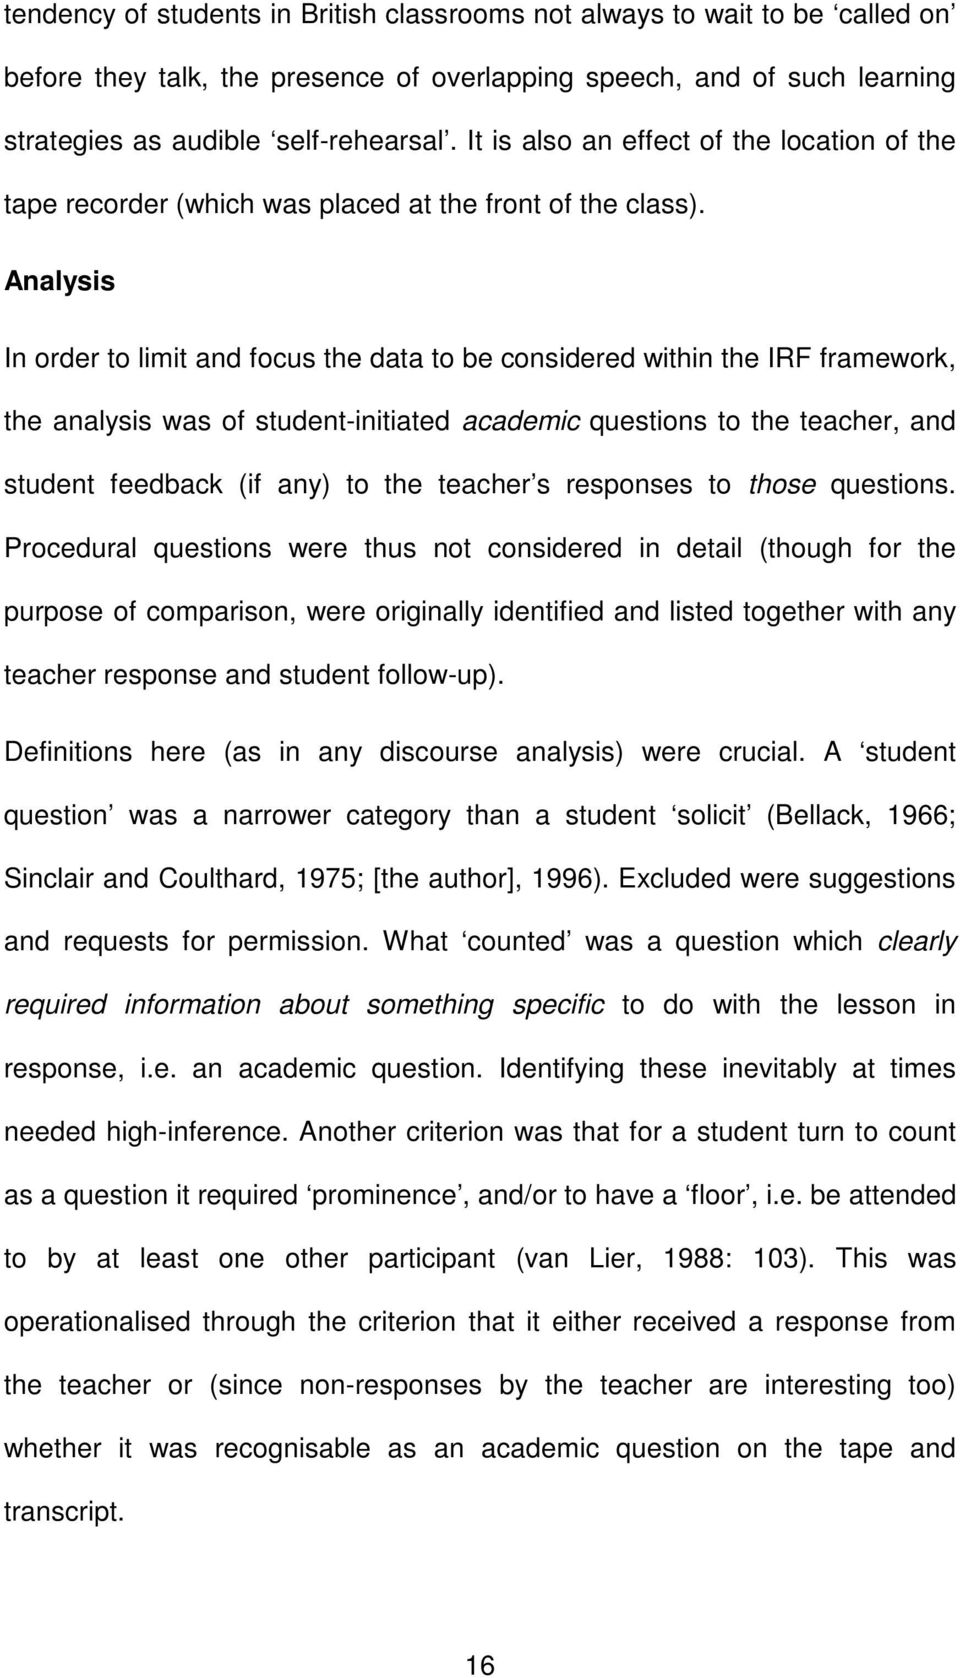 Analysis In order to limit and focus the data to be considered within the IRF framework, the analysis was of student-initiated academic questions to the teacher, and student feedback (if any) to the